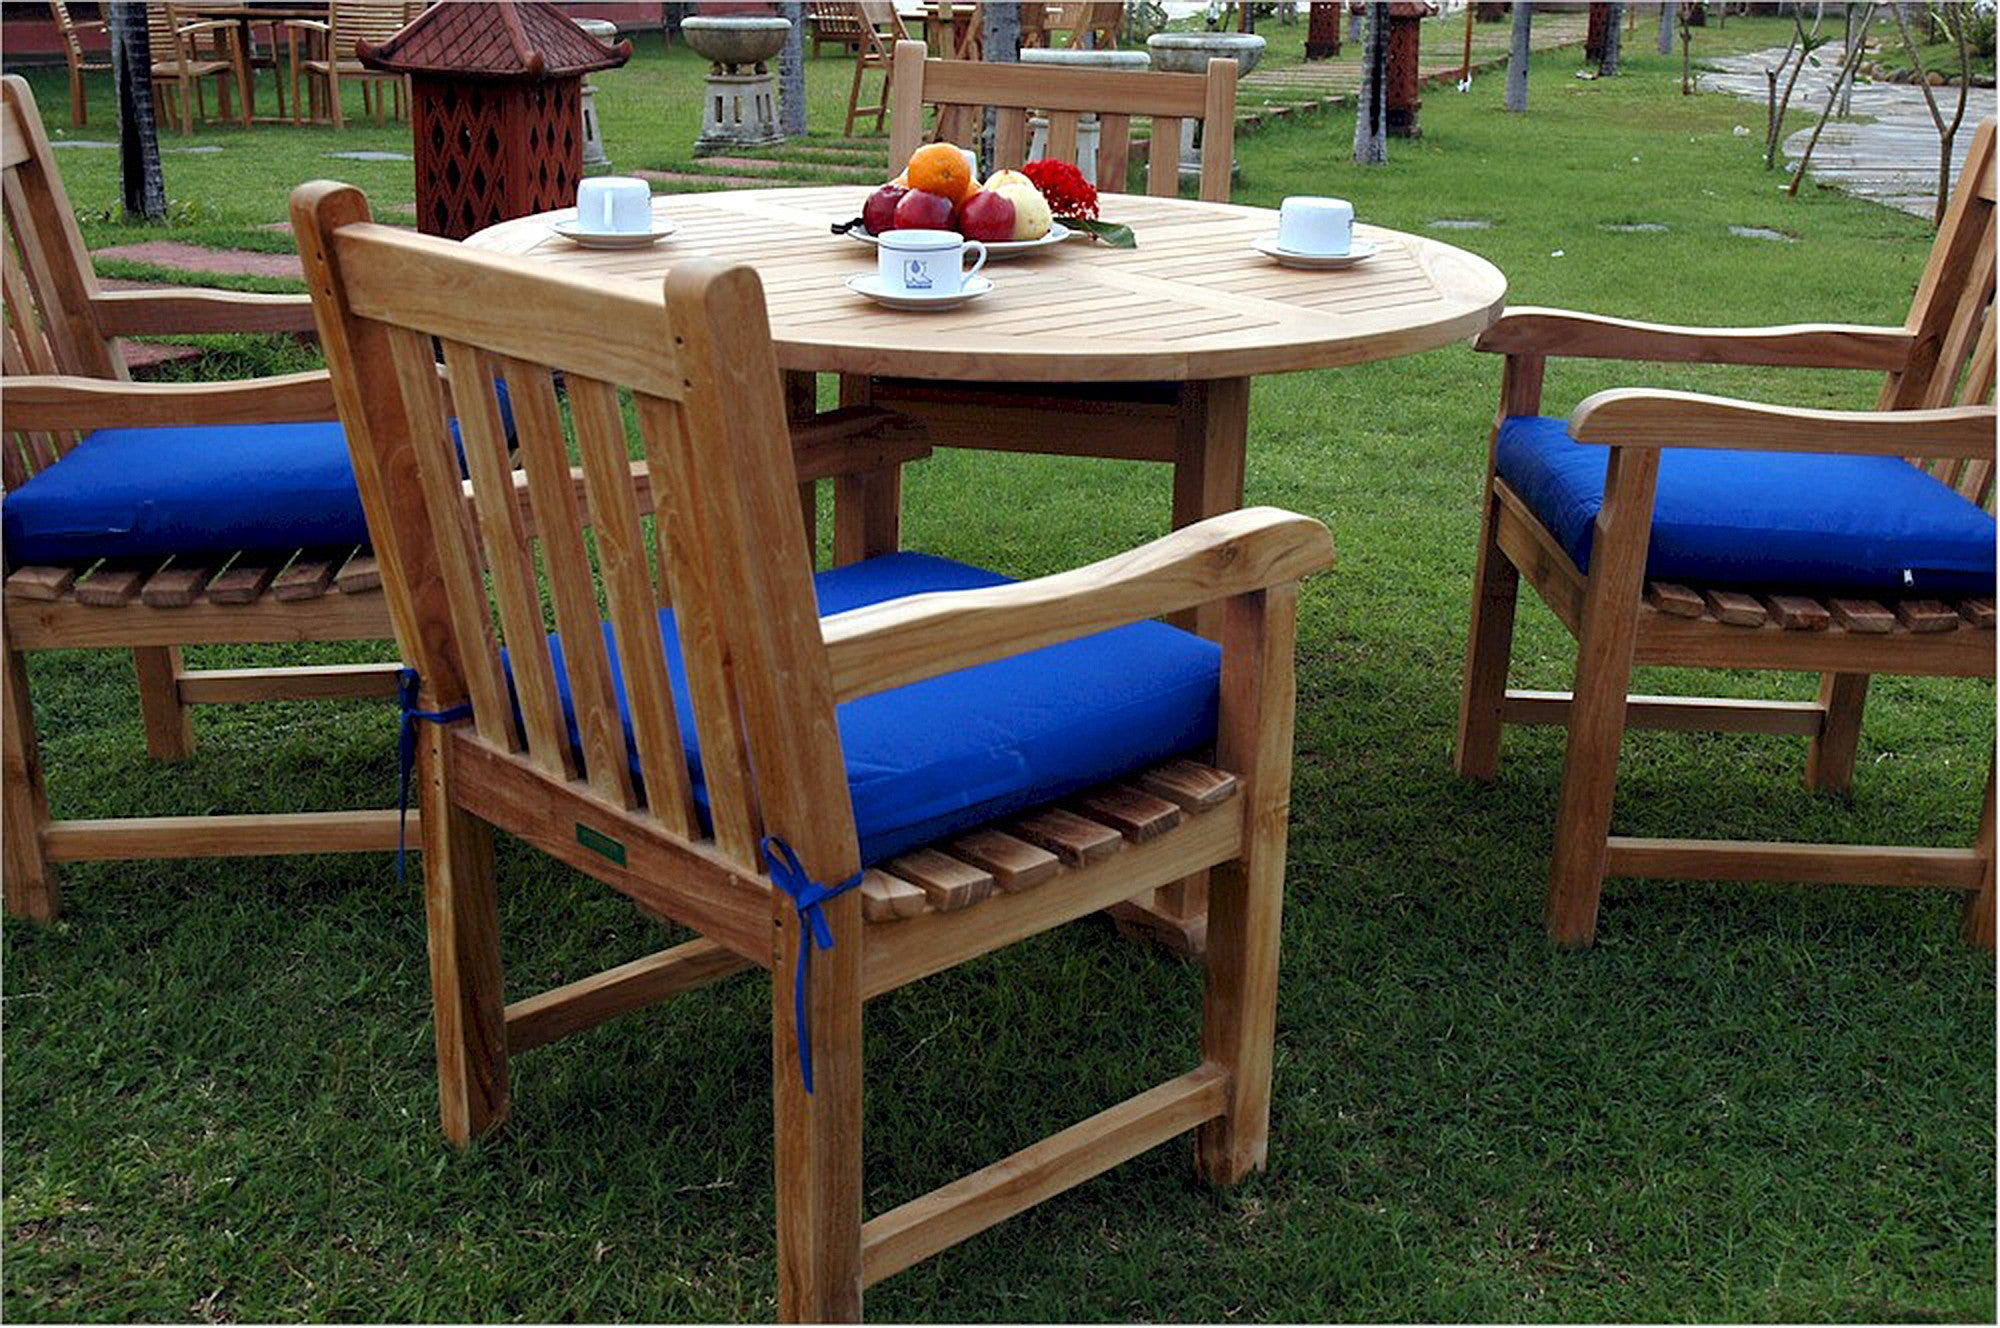 Anderson Tosca Round Table Classic Chairs Teak Patio Set